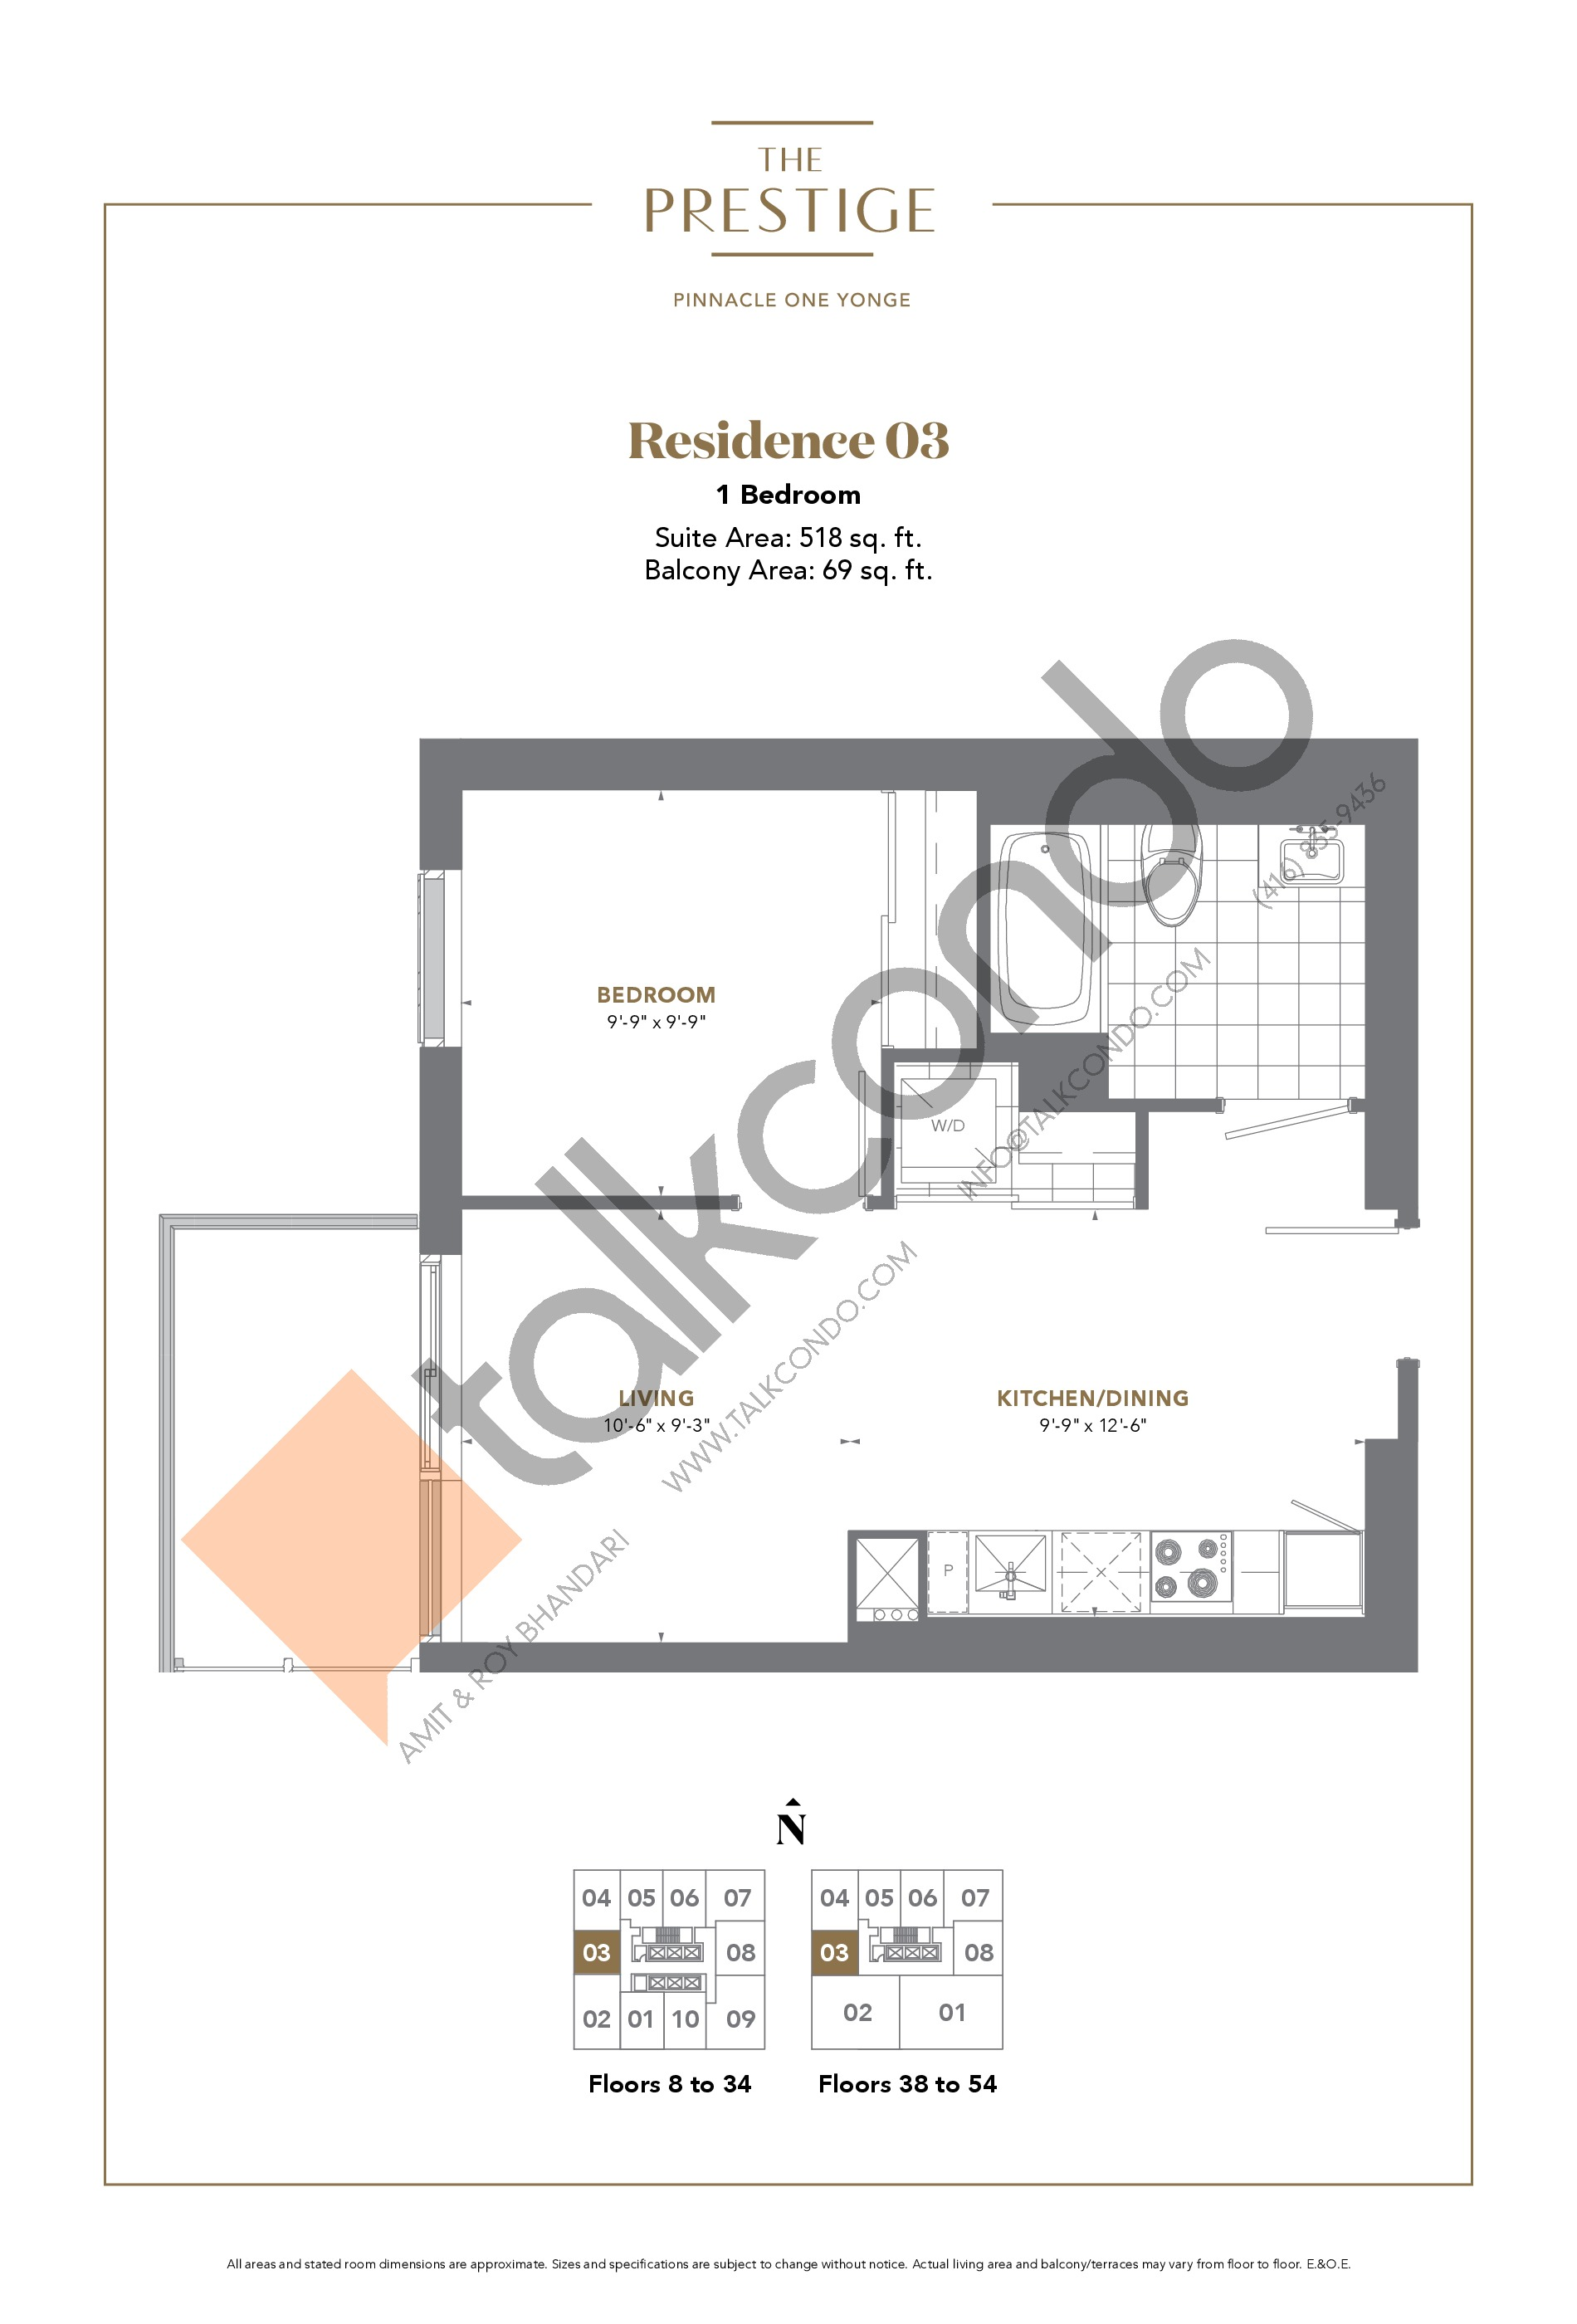 Residence 03 Floor Plan at The Prestige Condos at Pinnacle One Yonge - 518 sq.ft